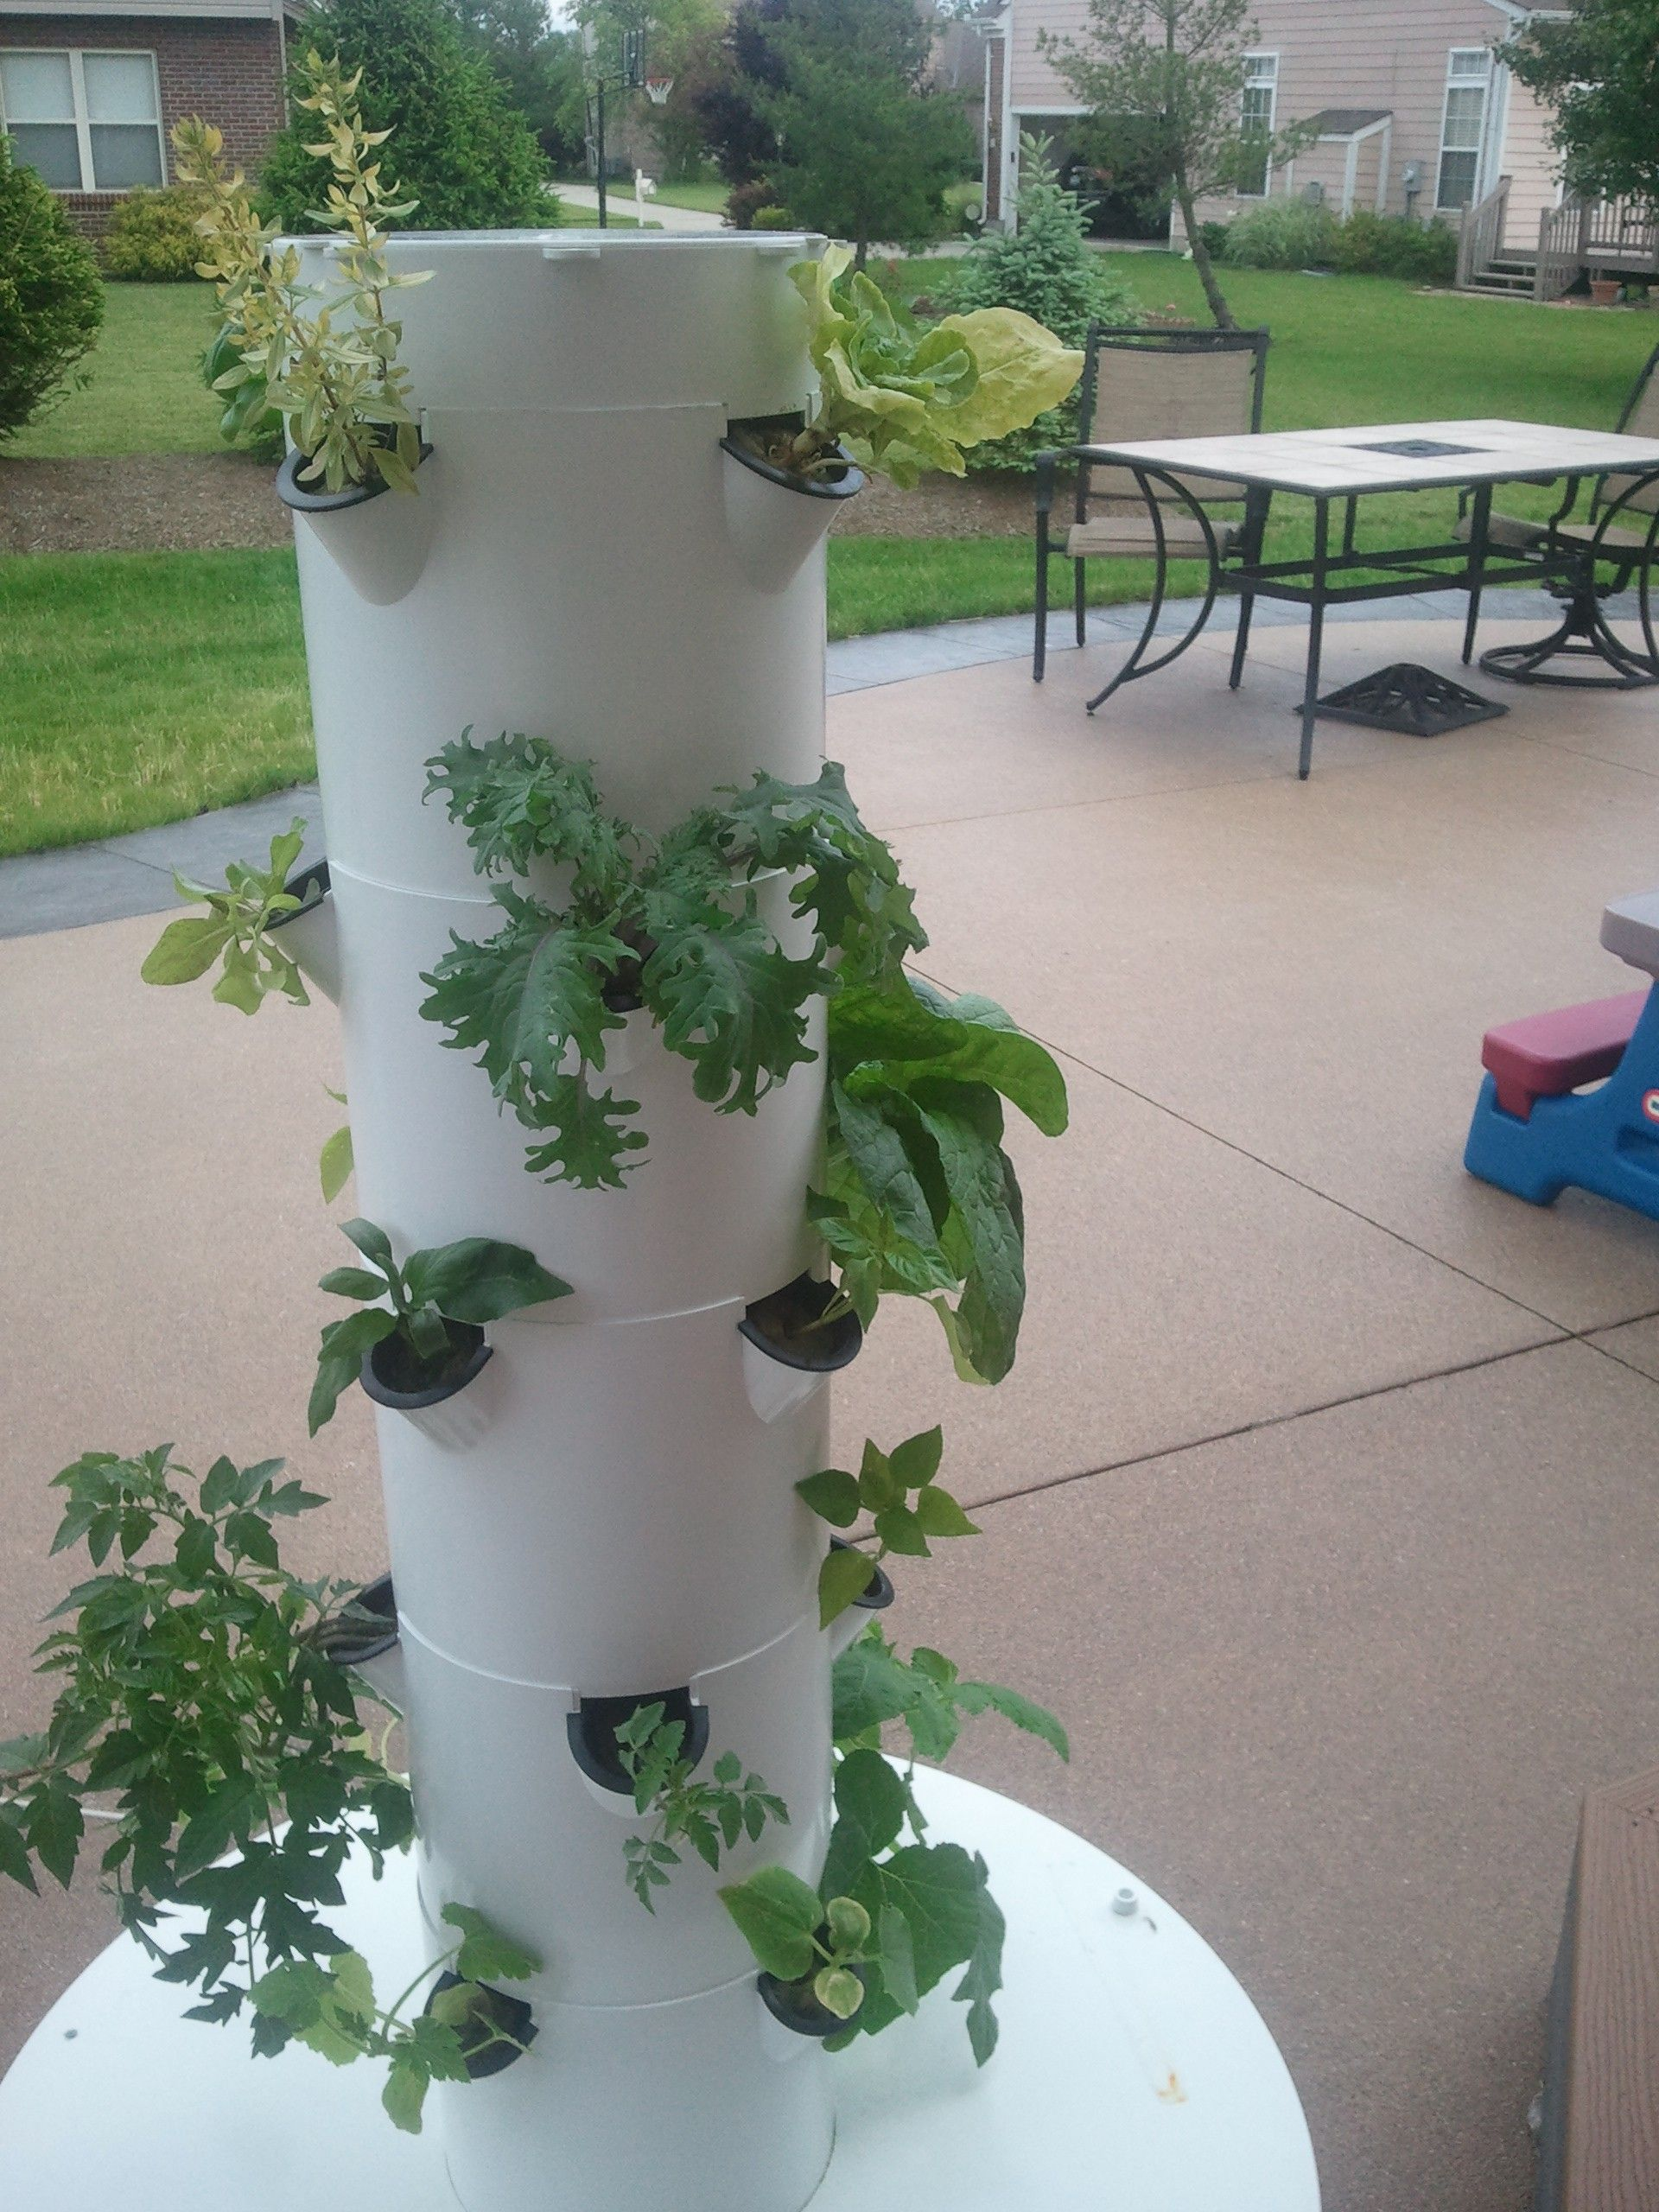 My Tower Garden after only 3 weeks | Tower garden ...